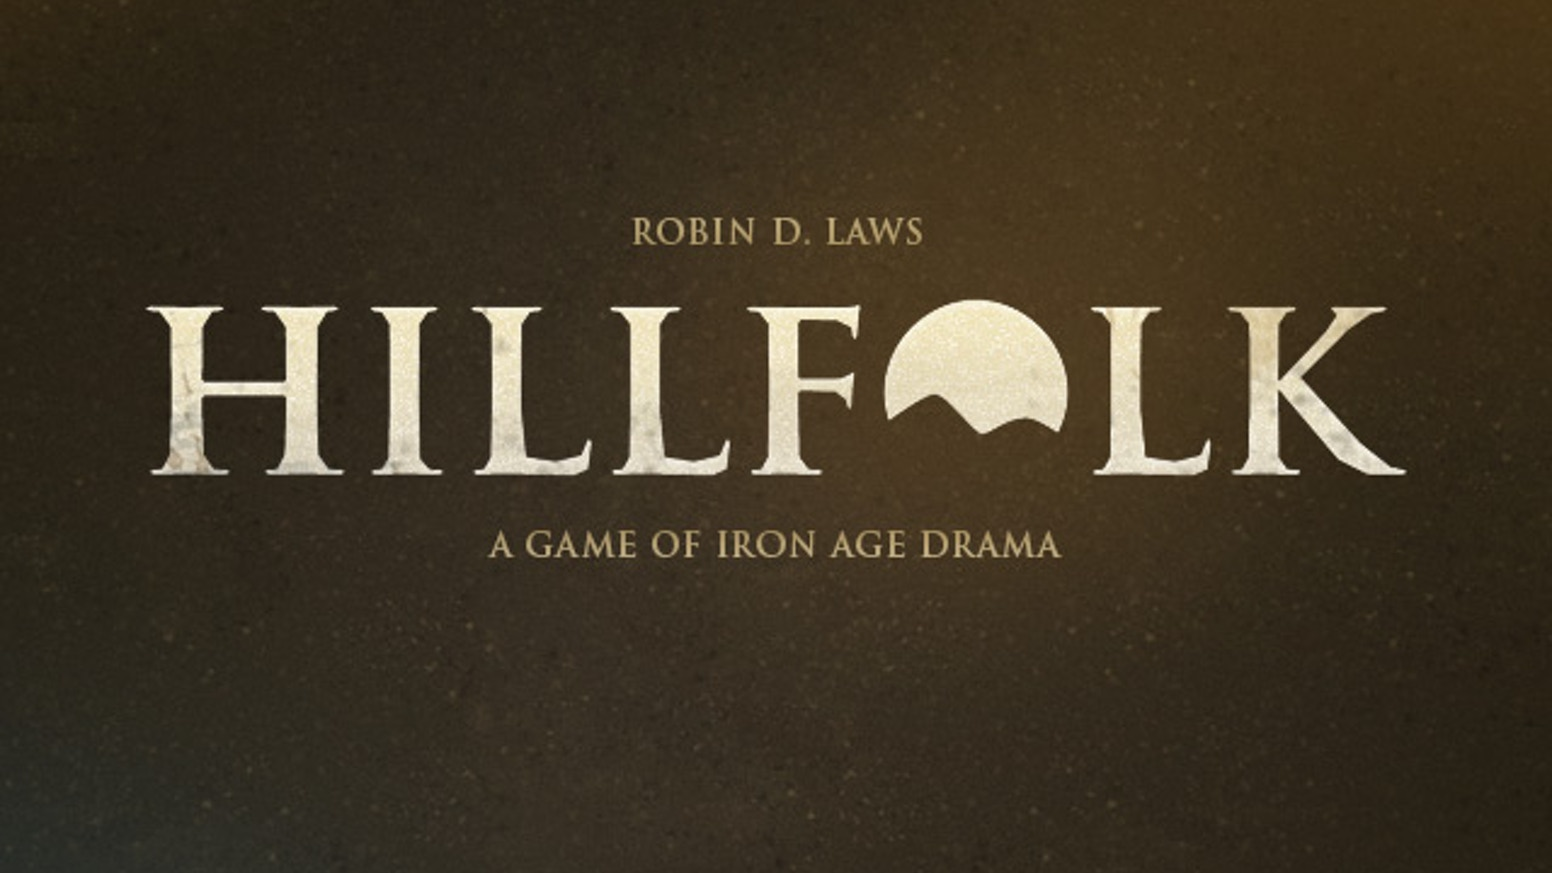 Hillfolk, a game of epic personal interaction by Robin D. Laws, brings new dramatic insight to character-driven roleplaying.